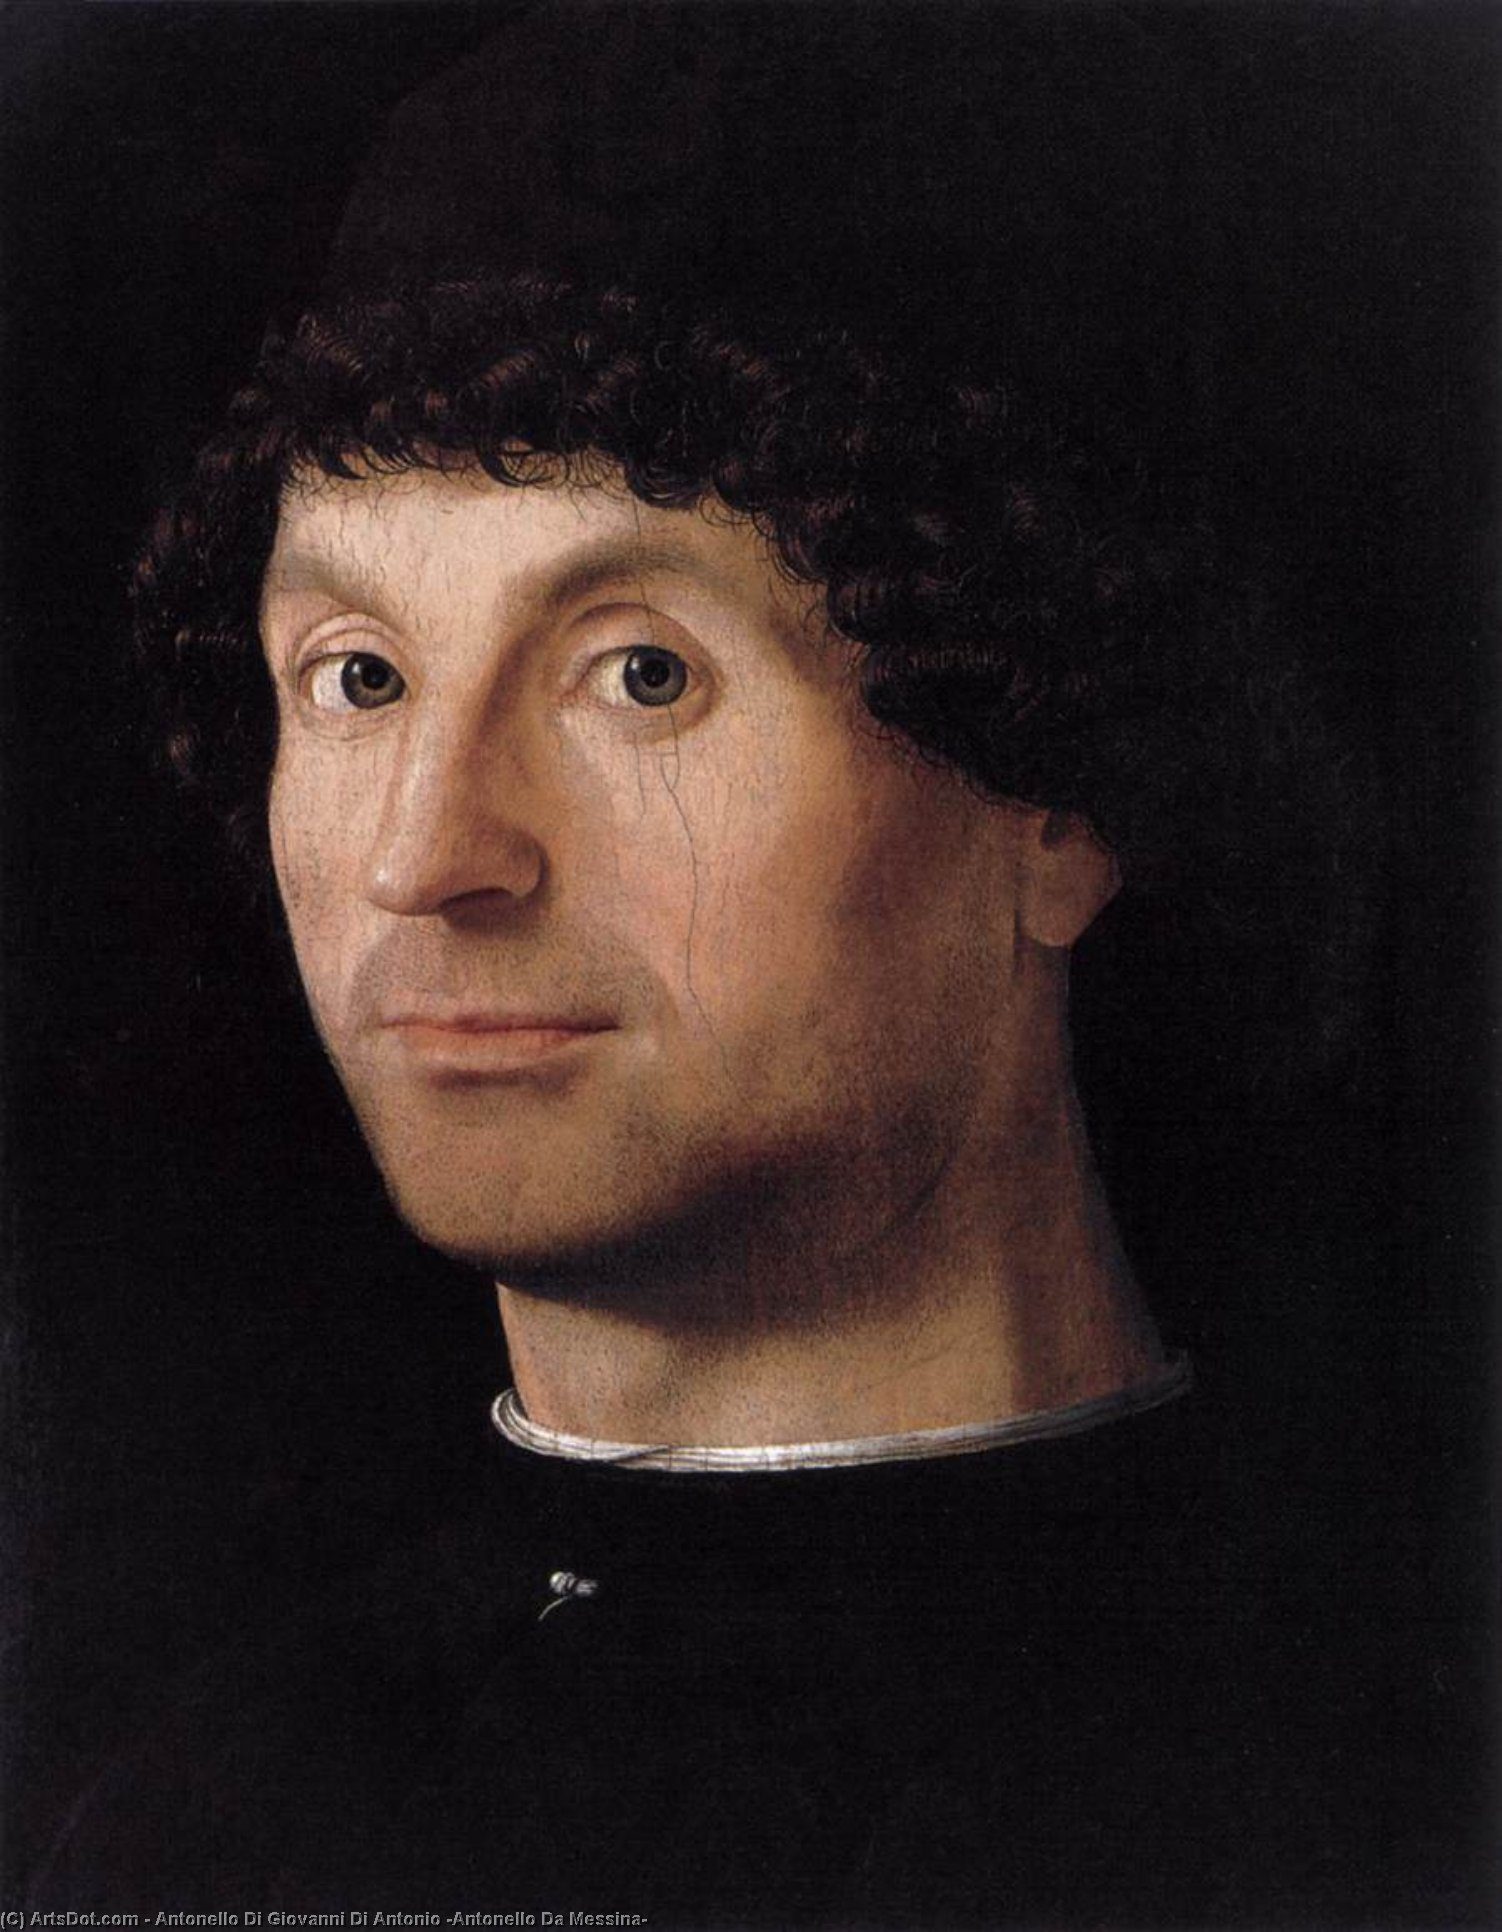 Портрет мужчины, Масло на панели по Antonello Di Giovanni Di Antonio (Antonello Da Messina) (1430-1479, Italy)